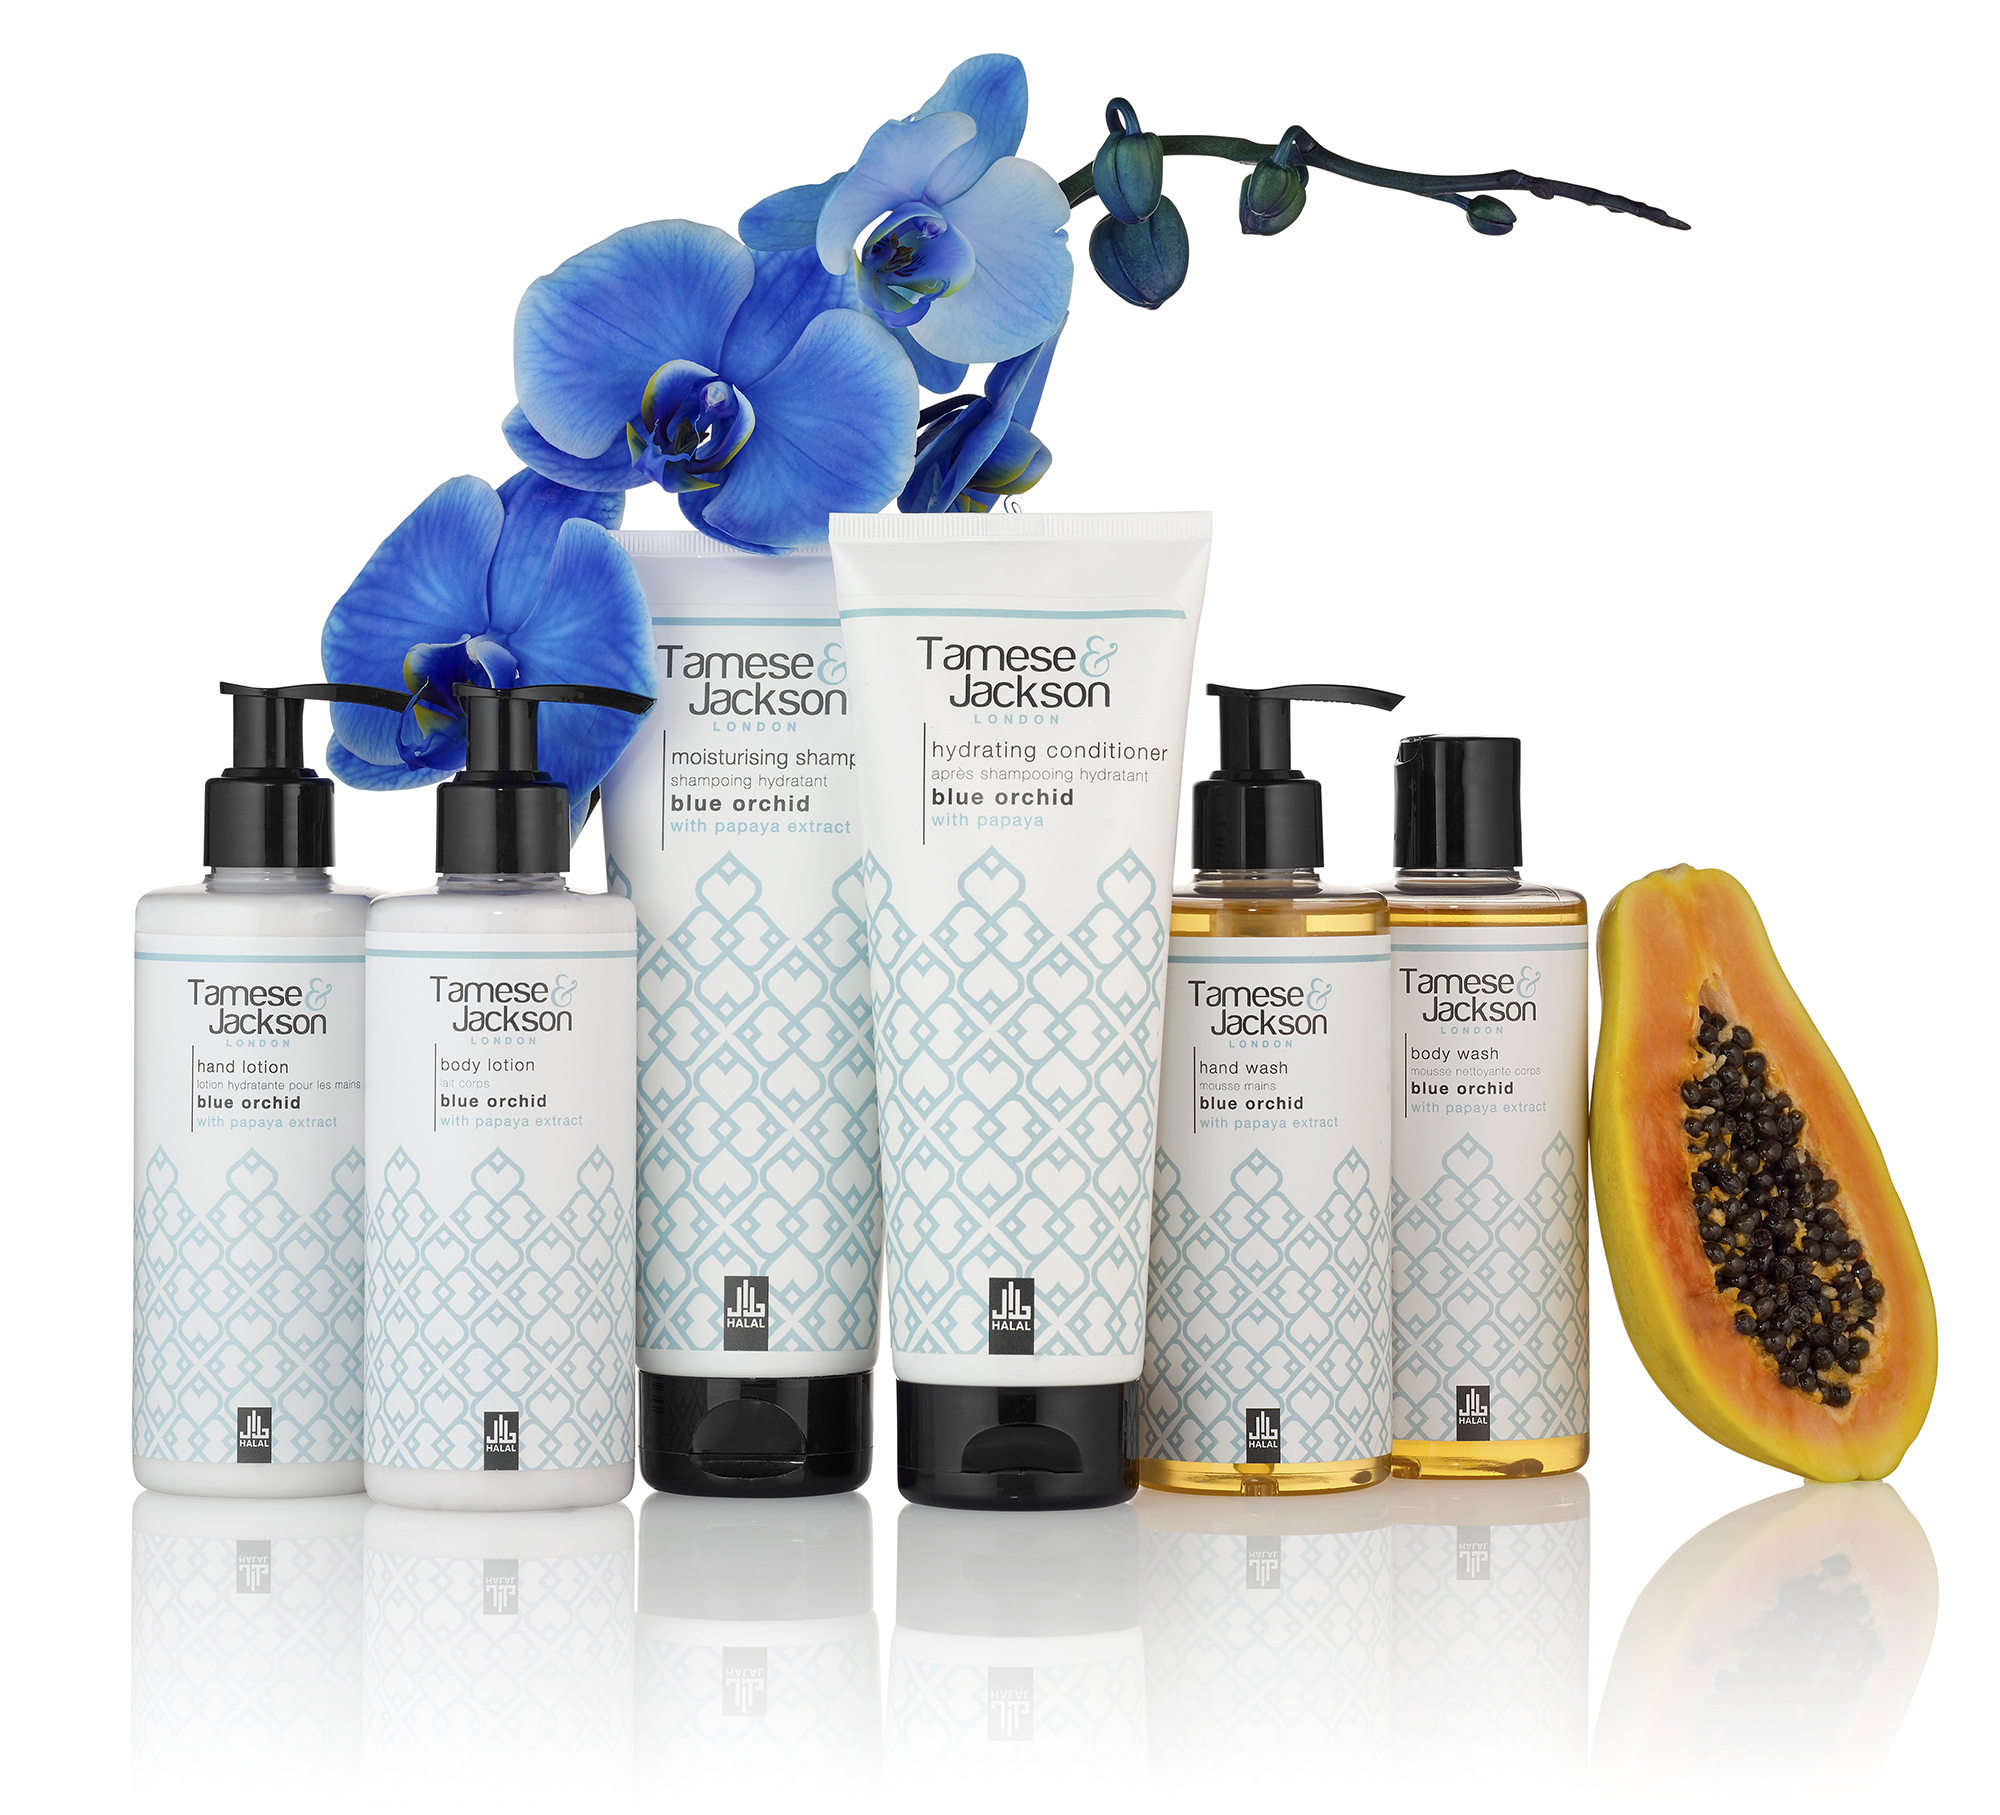 Cosmetic packshot photography with fresh ingredients including orchid and papaya fruit. Still life product photography for cosmetic beauty products.